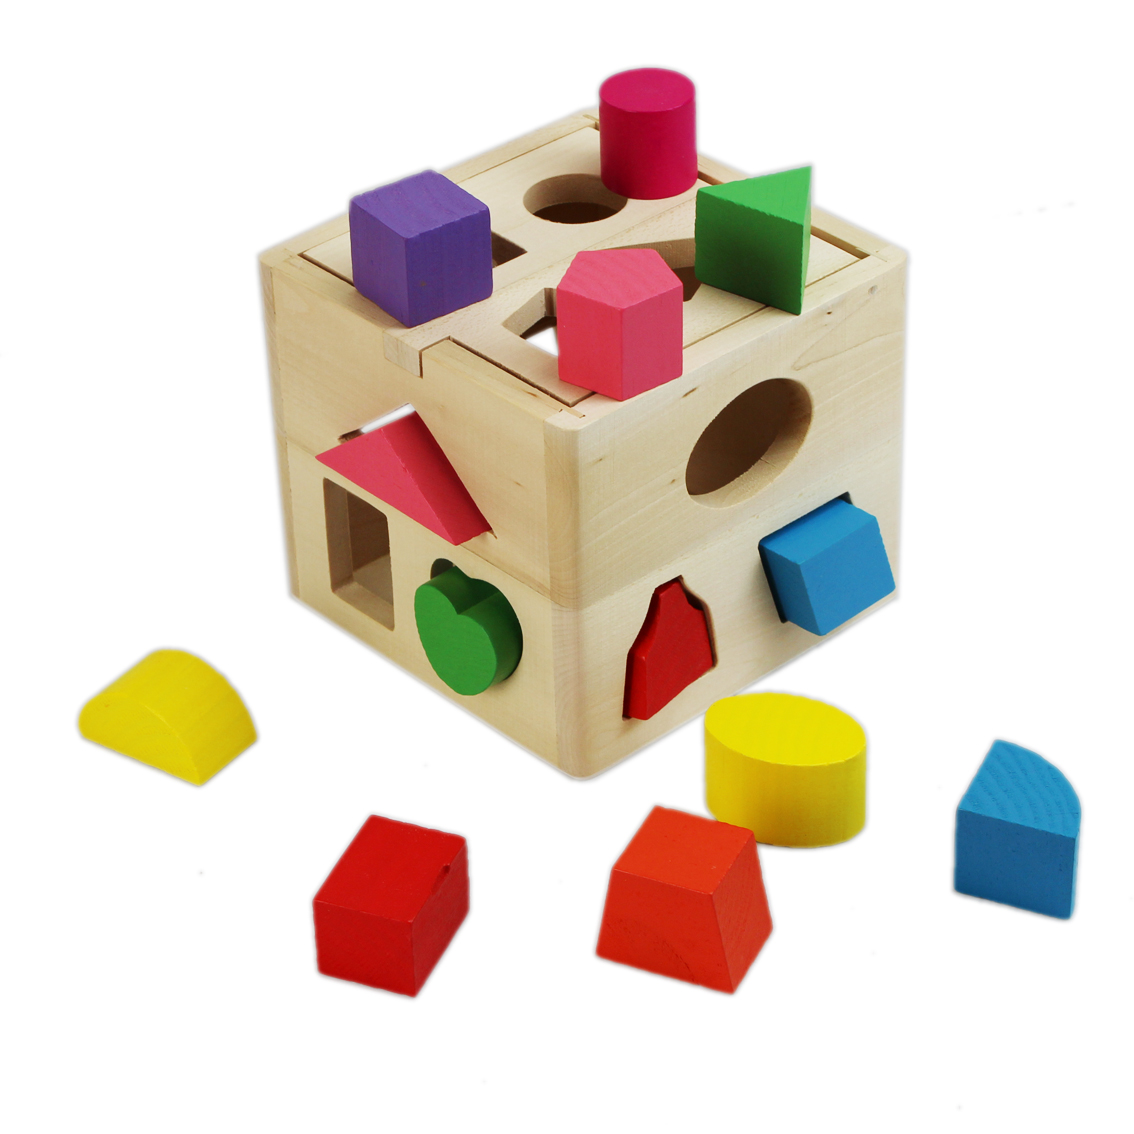 3 Year Old Developmental Toys : Educational toys years old thirteen hole intelligence